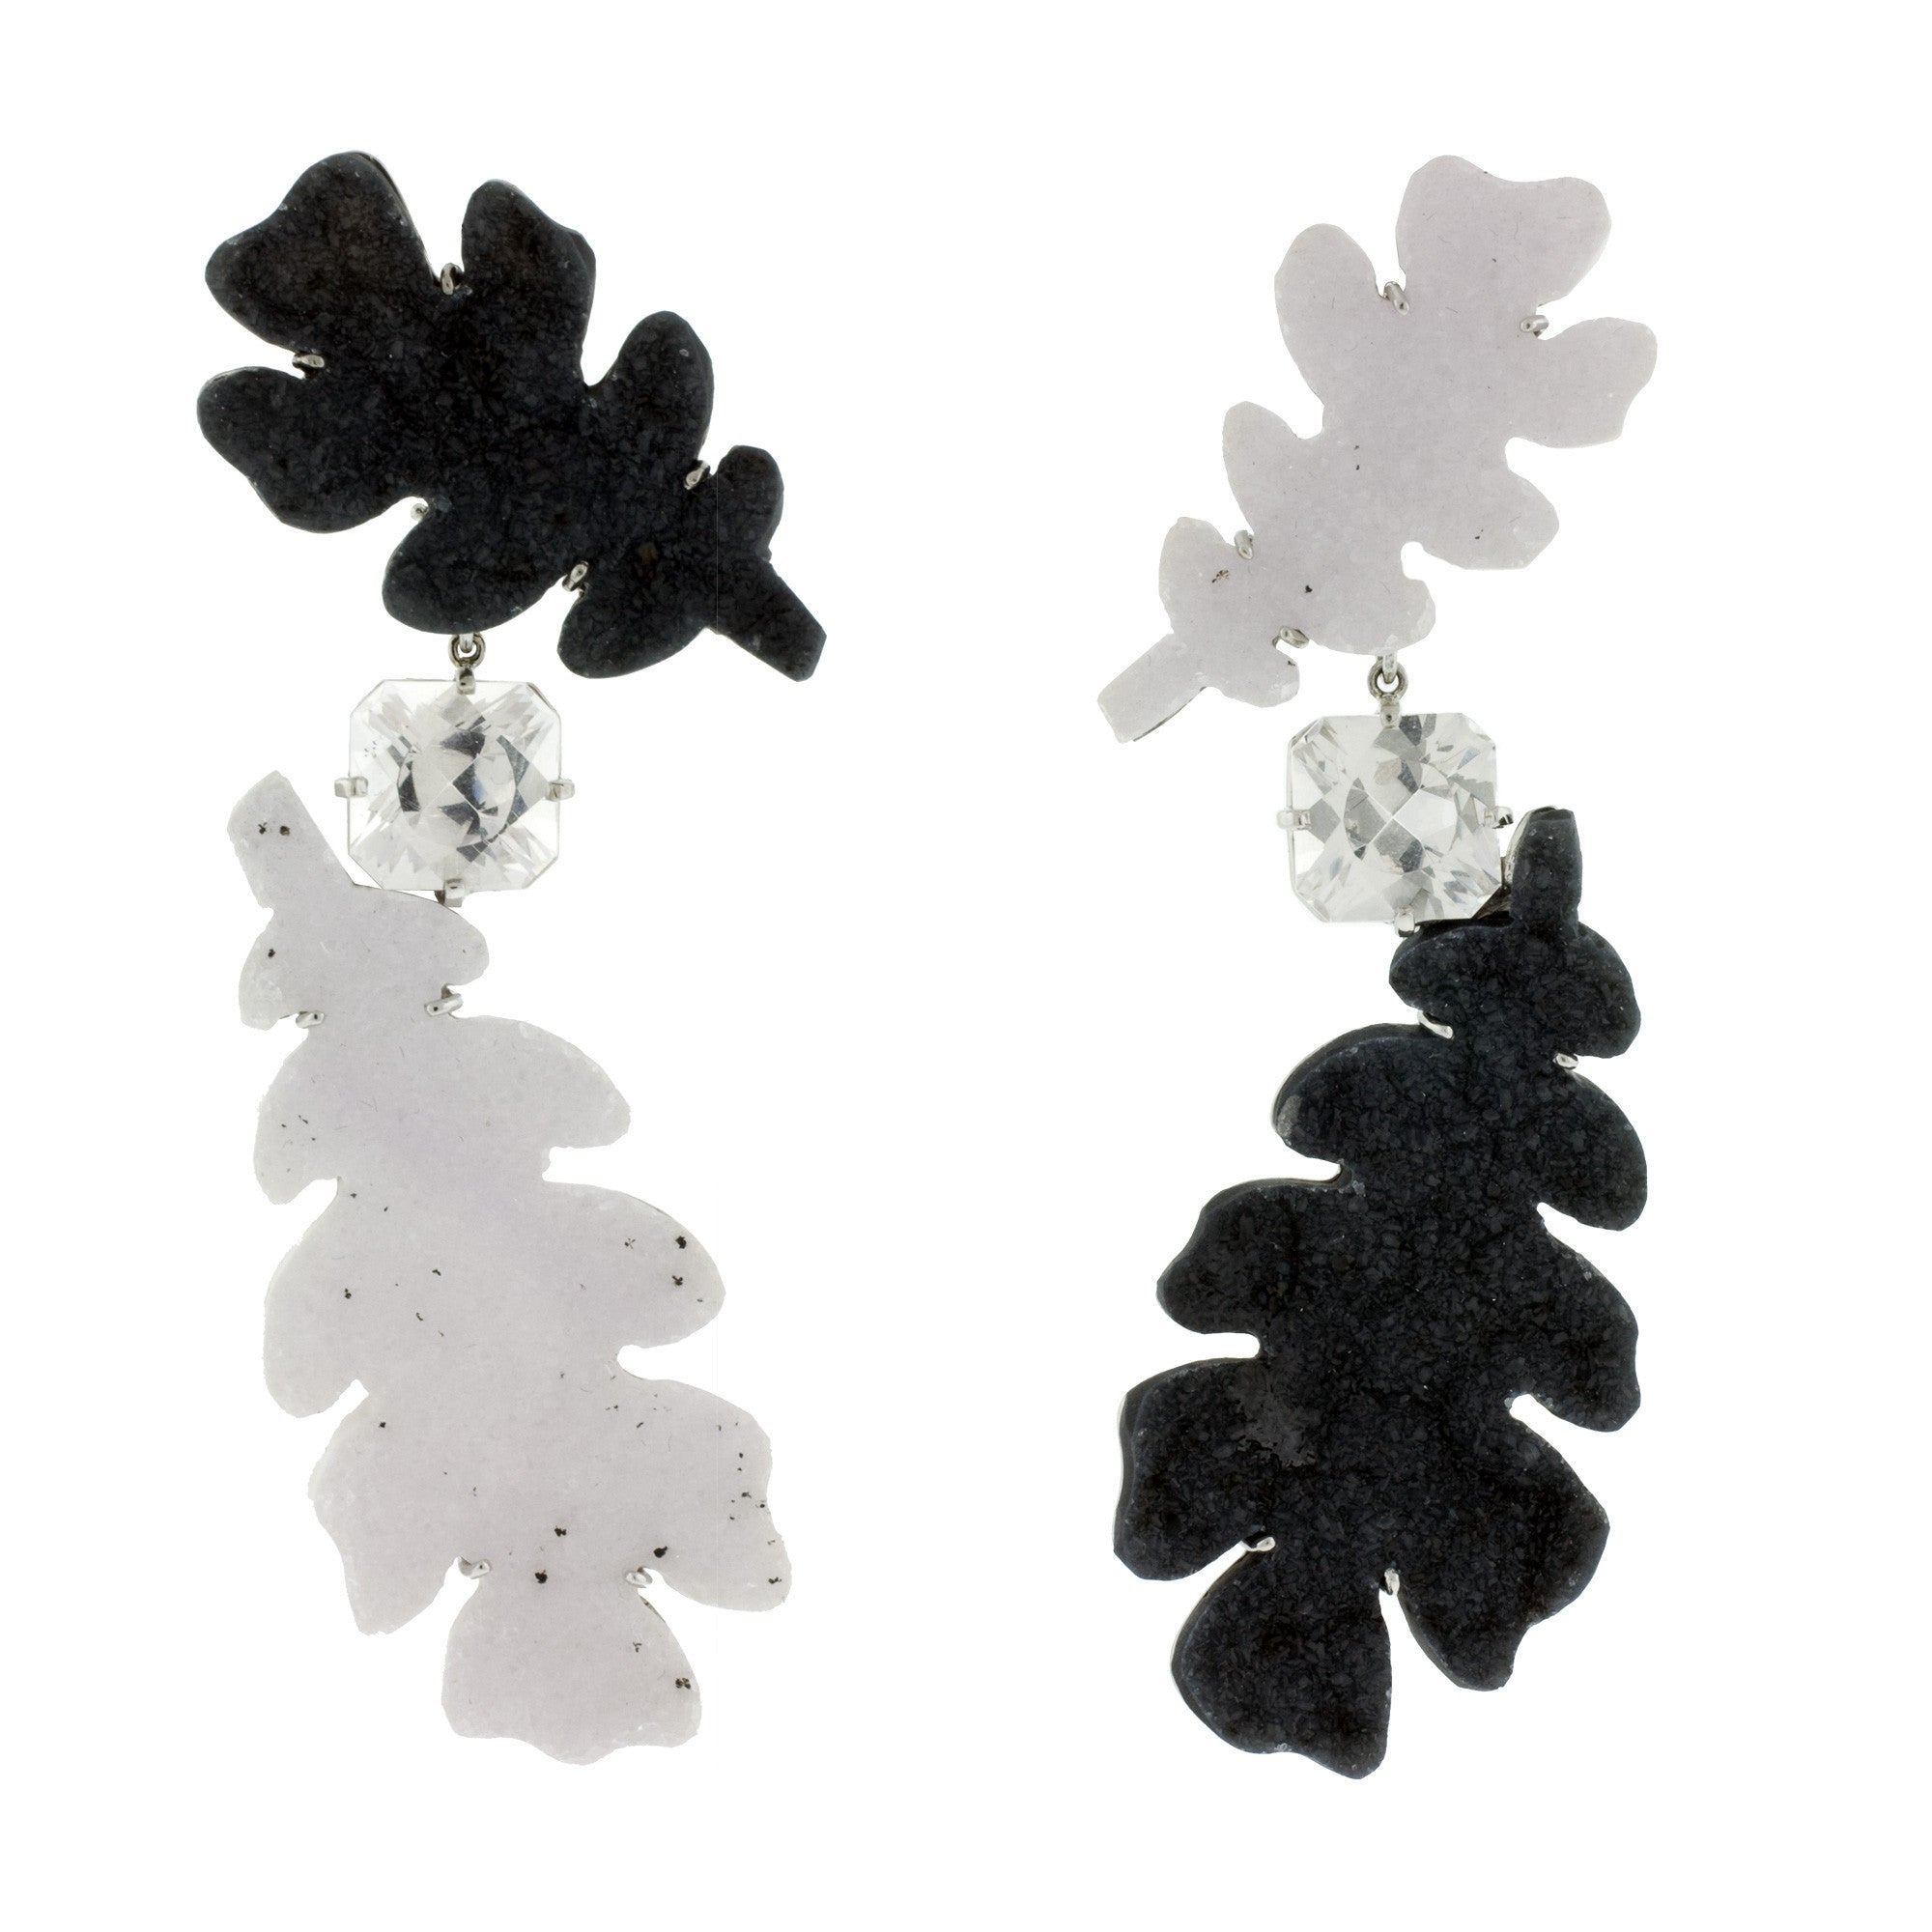 OAK III druze agate danburite earrings